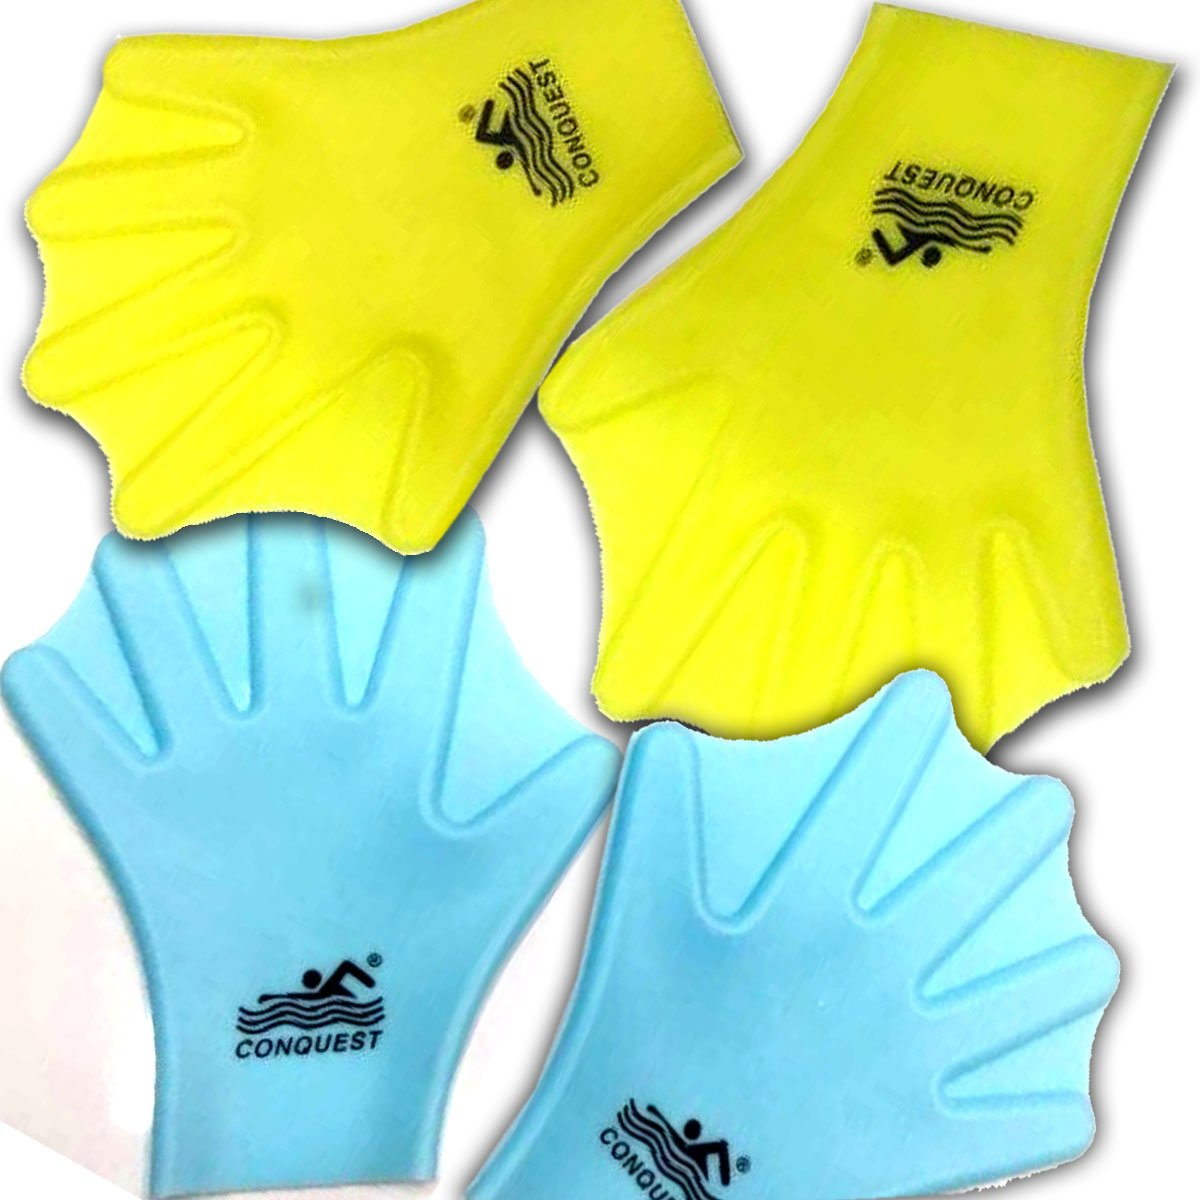 Swimming Dive Hand Paddles Soft Silicone Webbed Gloves Swim Aquatic Training Accessories 2 PCS for Adult (YELLOW) by VERISA